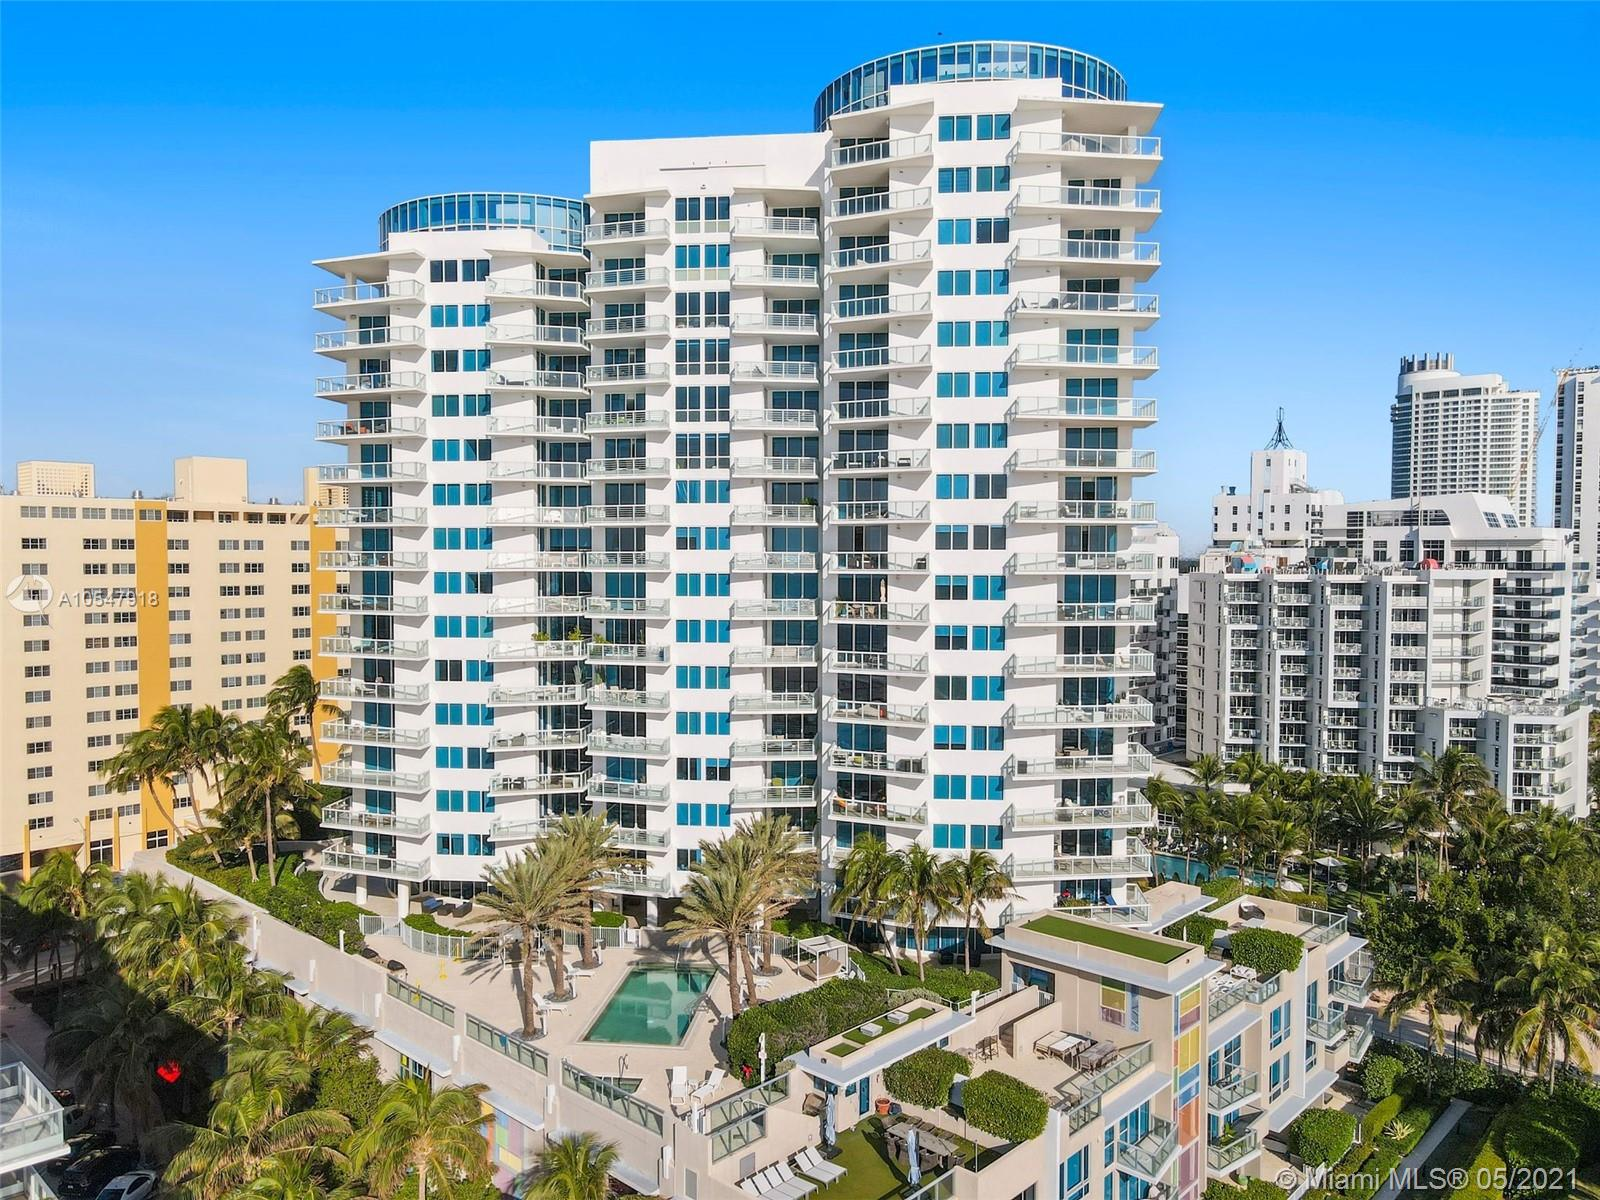 DIRECT OCEANFRONT 2 BEDROOM RESIDENCE DESIGNED BY LUMINAIRE AT MOSAIC! Private elevator entry foyer with 36x36 Light Limestone Flooring throughout the unit on to 2 Beachfront Terraces. Beachfront Living Room with Large Terrace to enjoy the Ocean Breeze. Split floorplan for privacy with Floorthru views of both the Atlantic Ocean and City of Miami Beach. Walnut Italian Kitchen with Miele & SubZero Appliances; 2 full Baths in Italian Stone. Full Service Boutique Building with Beach Club Service, Gym, Pool, BBQ, Casbah Room Movie Theater, Gardens,  24-hr Concierge & Valet.